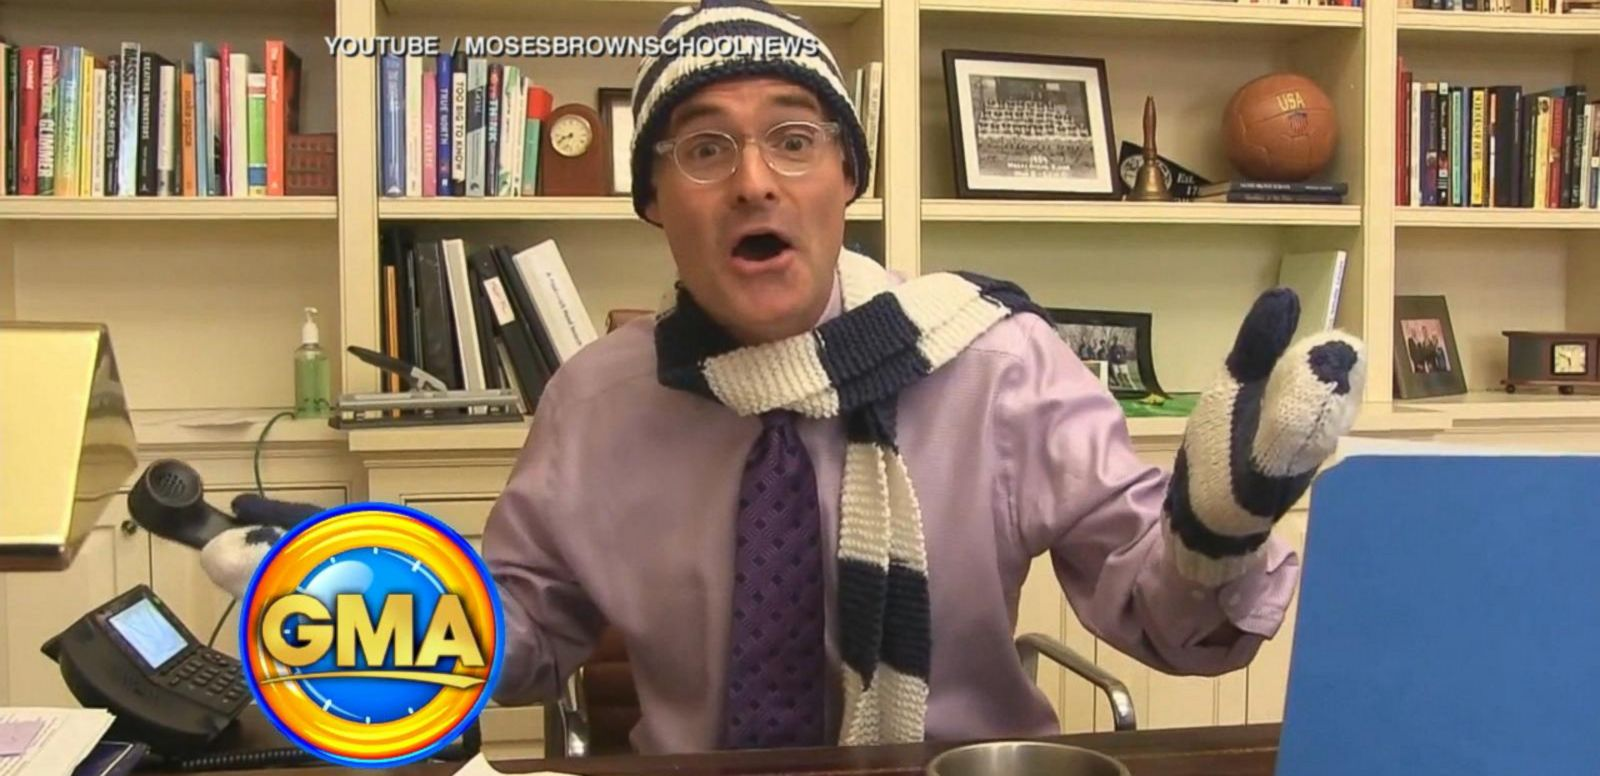 VIDEO: School's Viral Snow Day Announcement